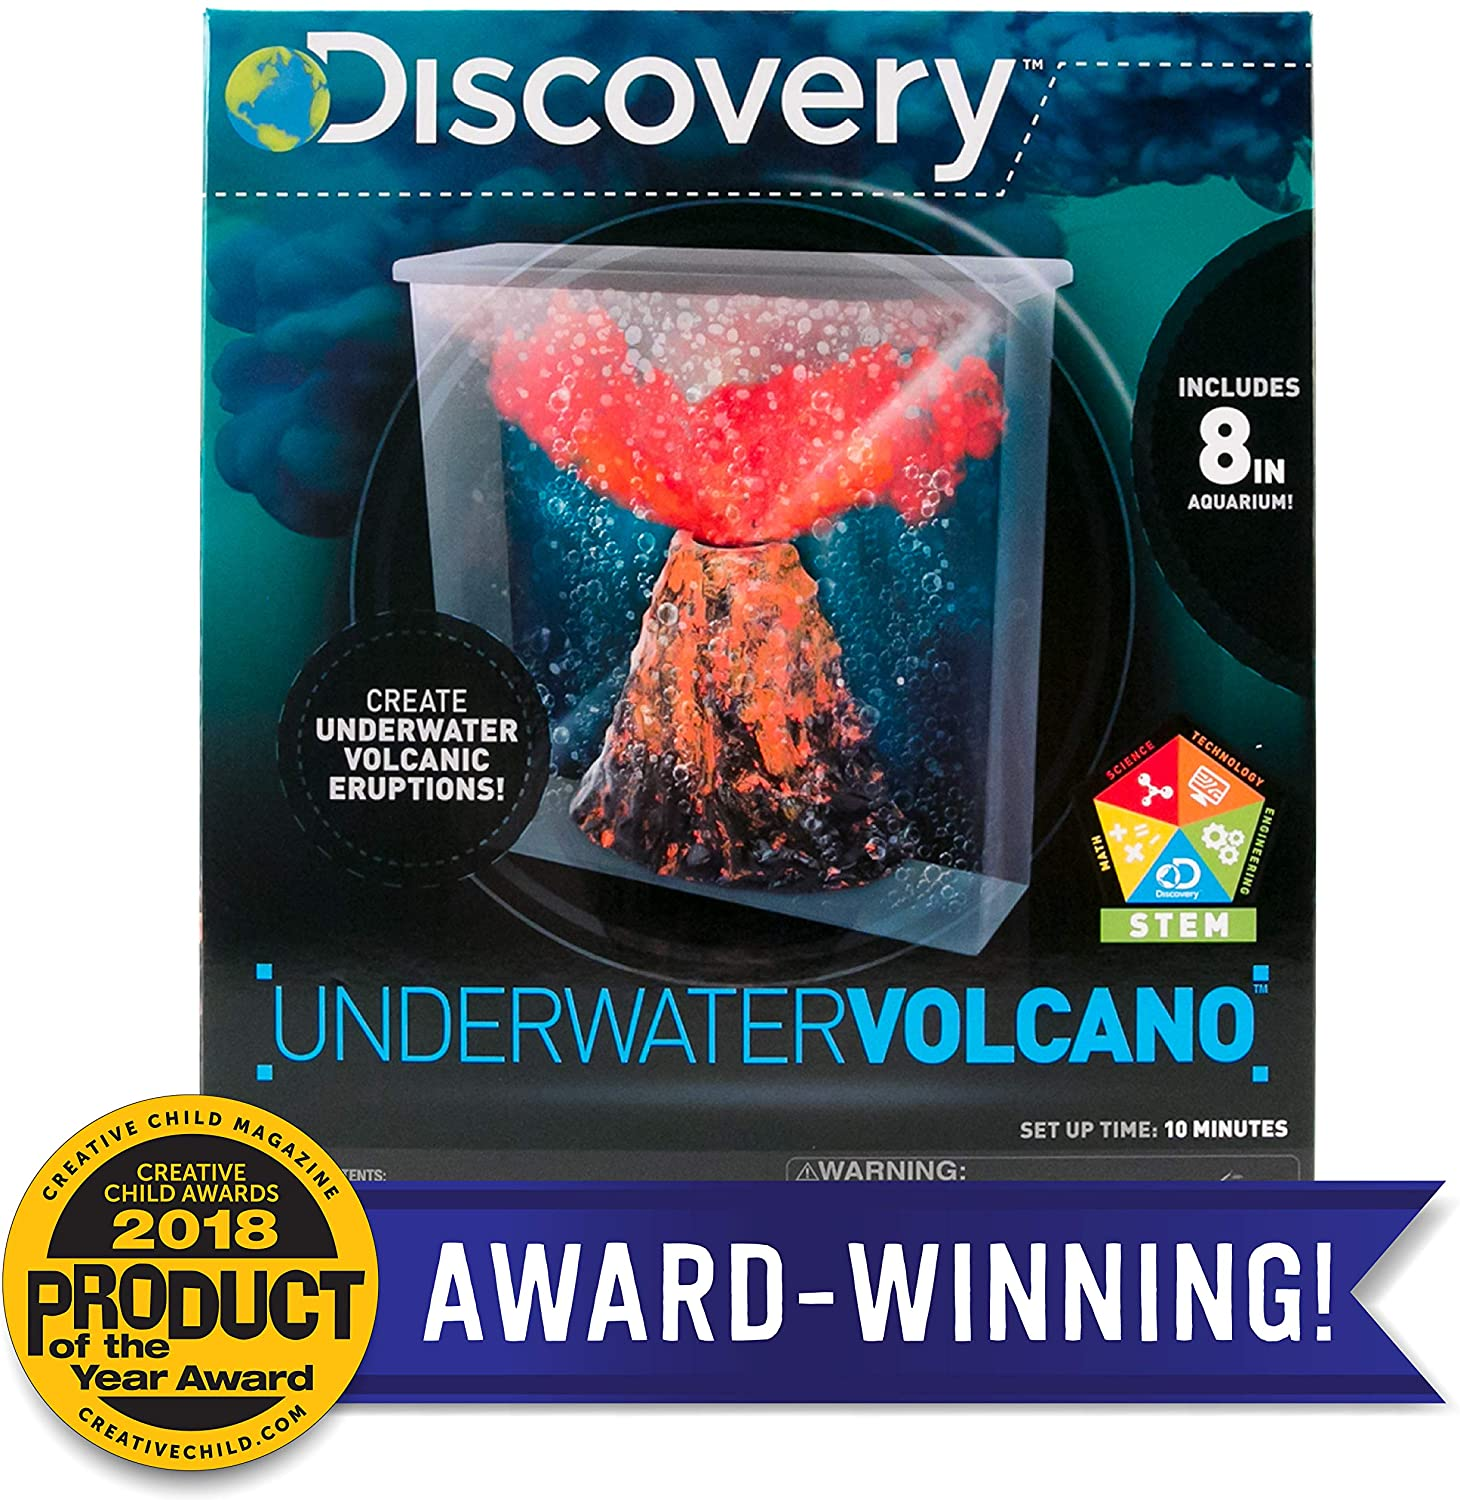 Discovery Under Water Volcano Eruption by Horizon Group Usa, Perform Stem Science Fair Experiments with Bubbly, Fizzy, Lava Eruptions, Model:765940739068